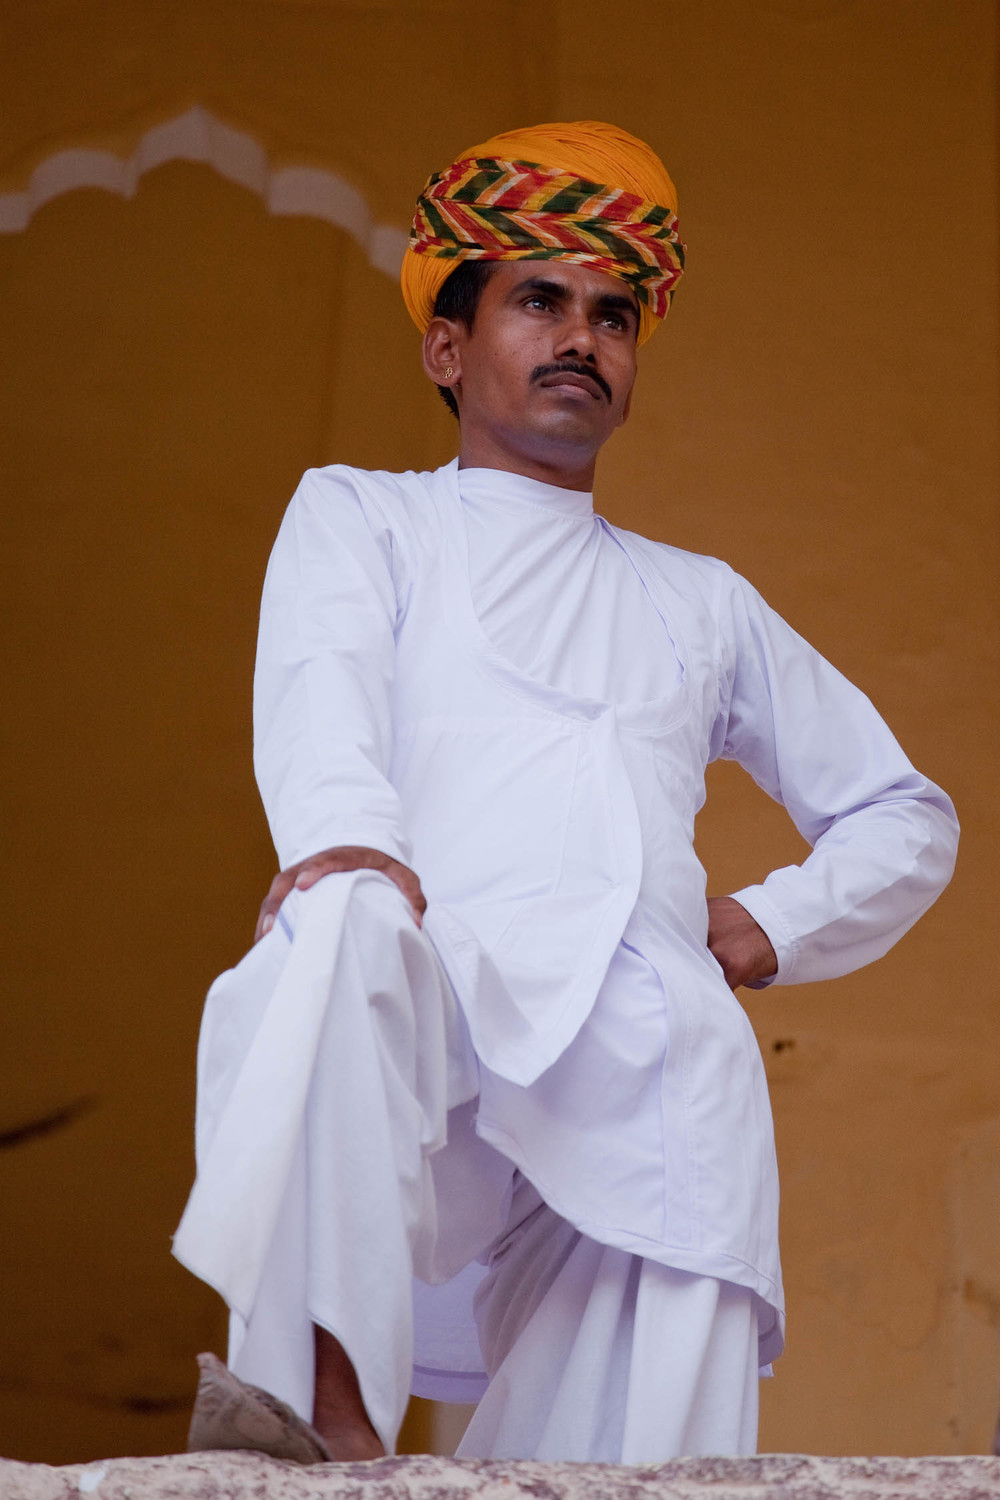 Guard-portrait-turban-local-indian-jodpur-fort-rajasthan-india-asia-travel